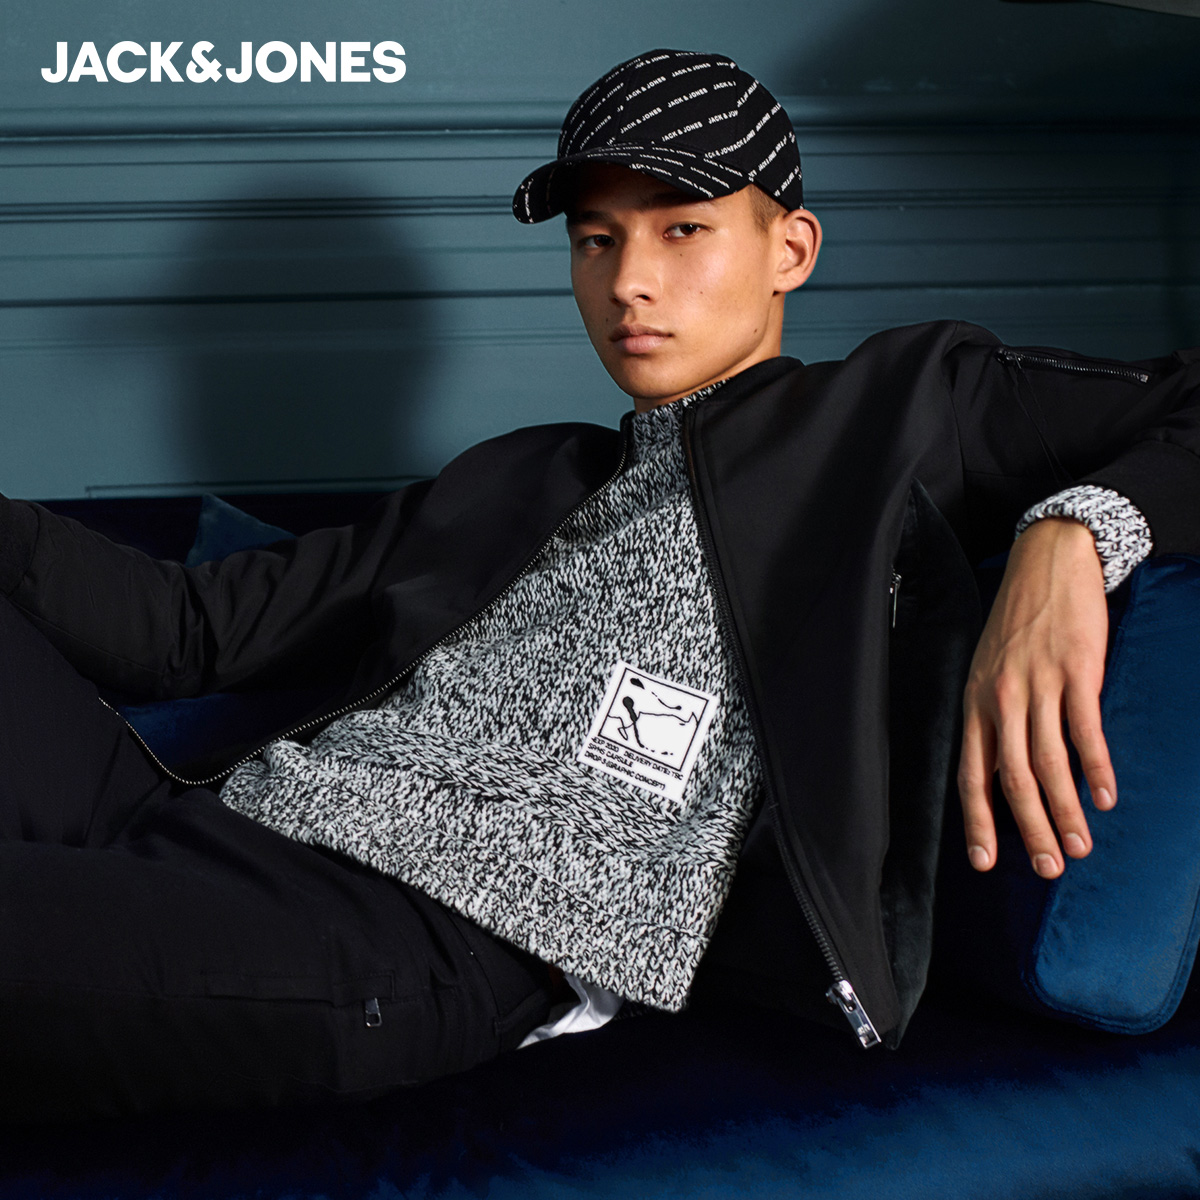 Jack Jones baseball uniform fashion solid color work jacket short coat men's spring wave 220121519